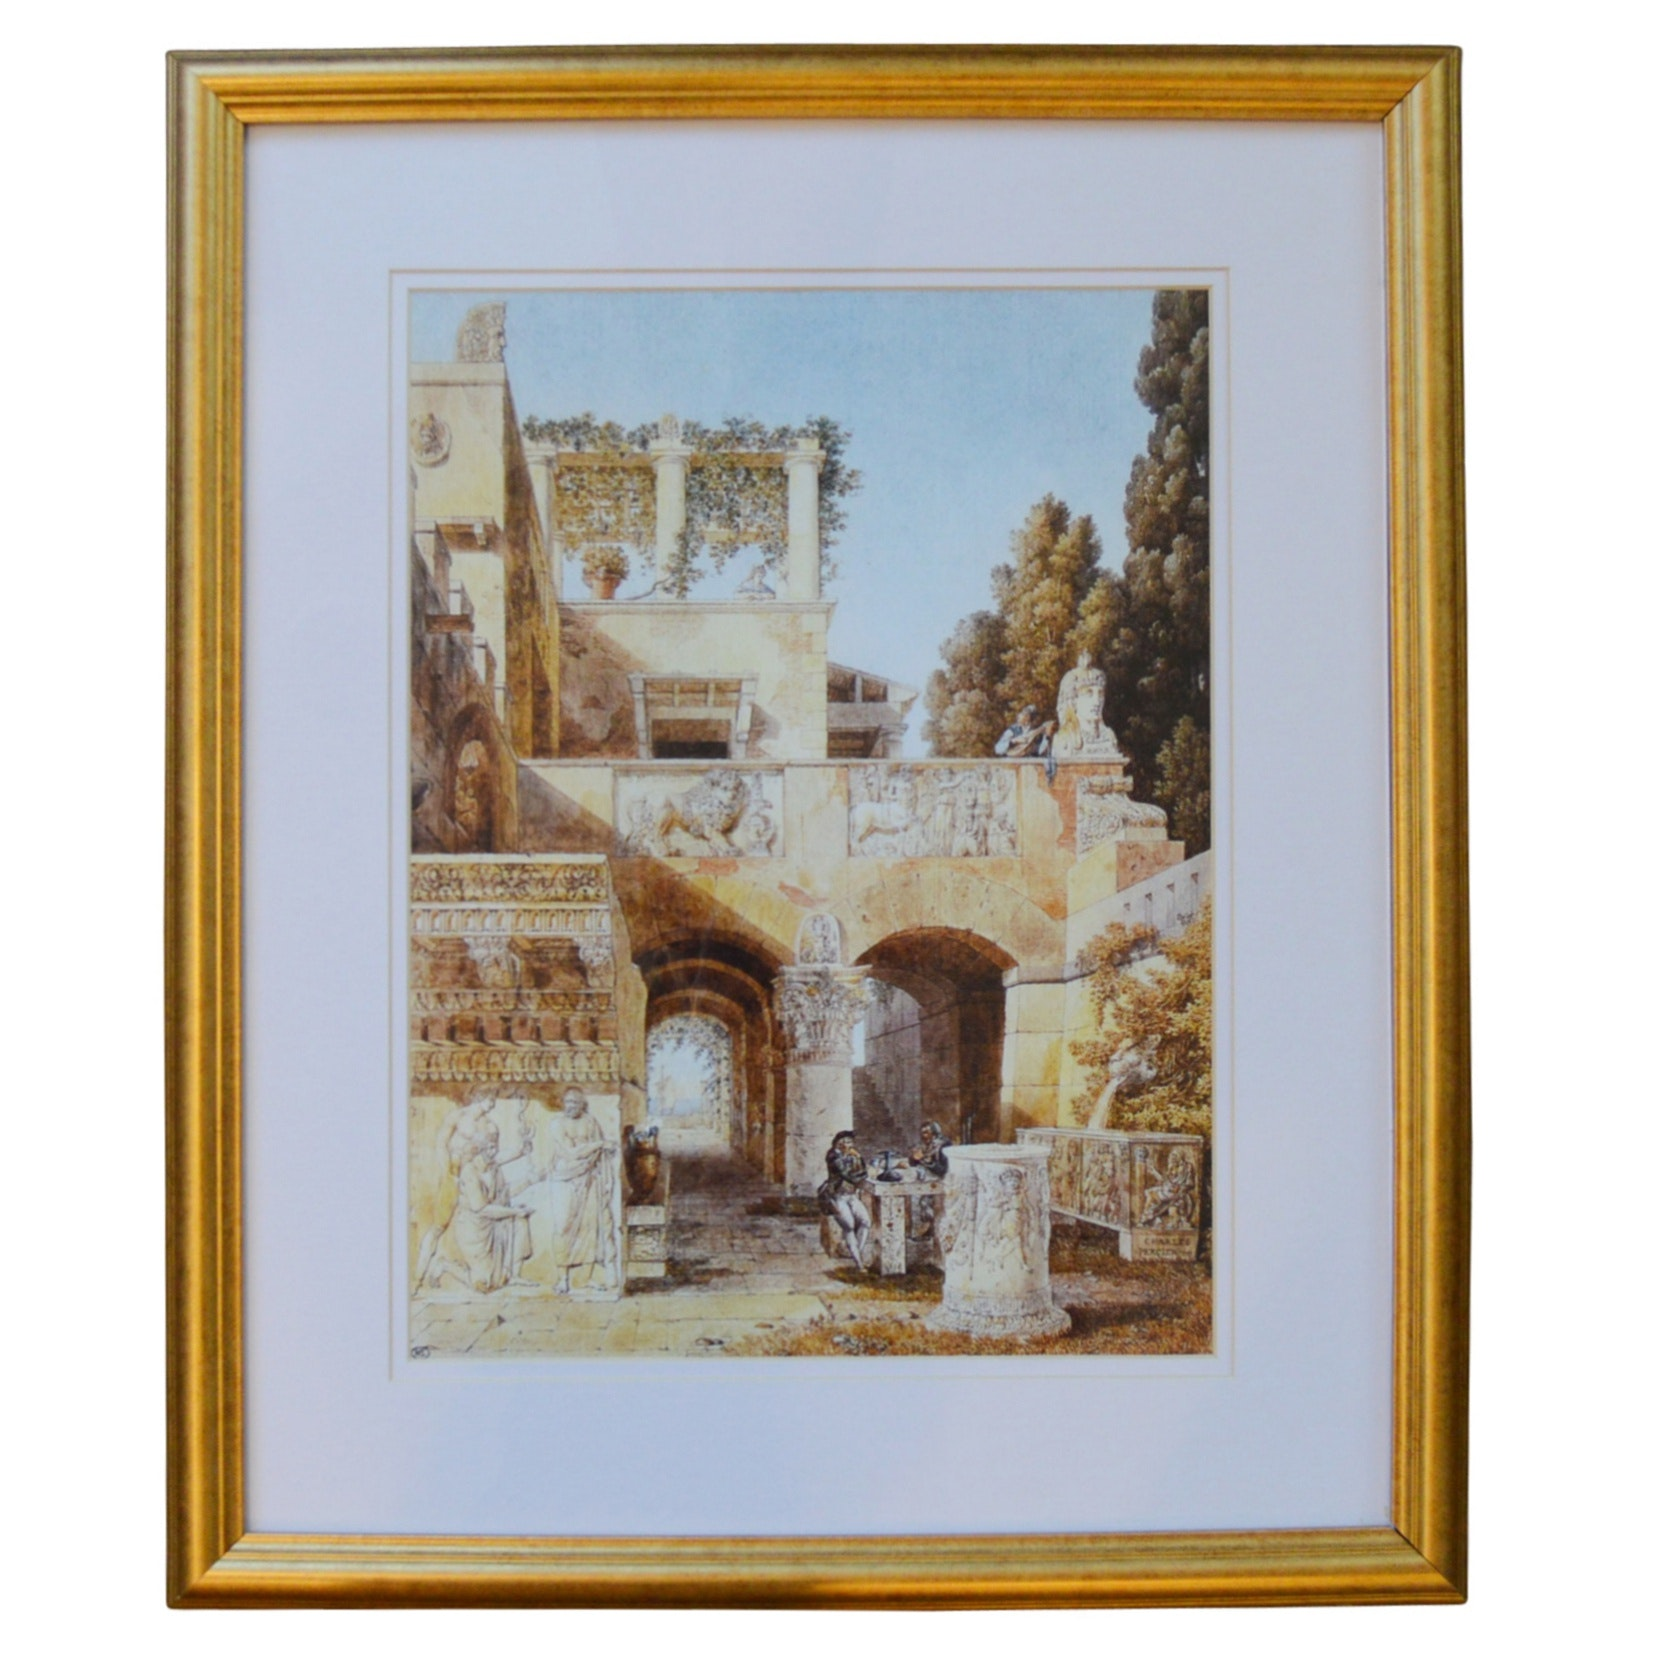 Framed Lithograph of Classical Ruins